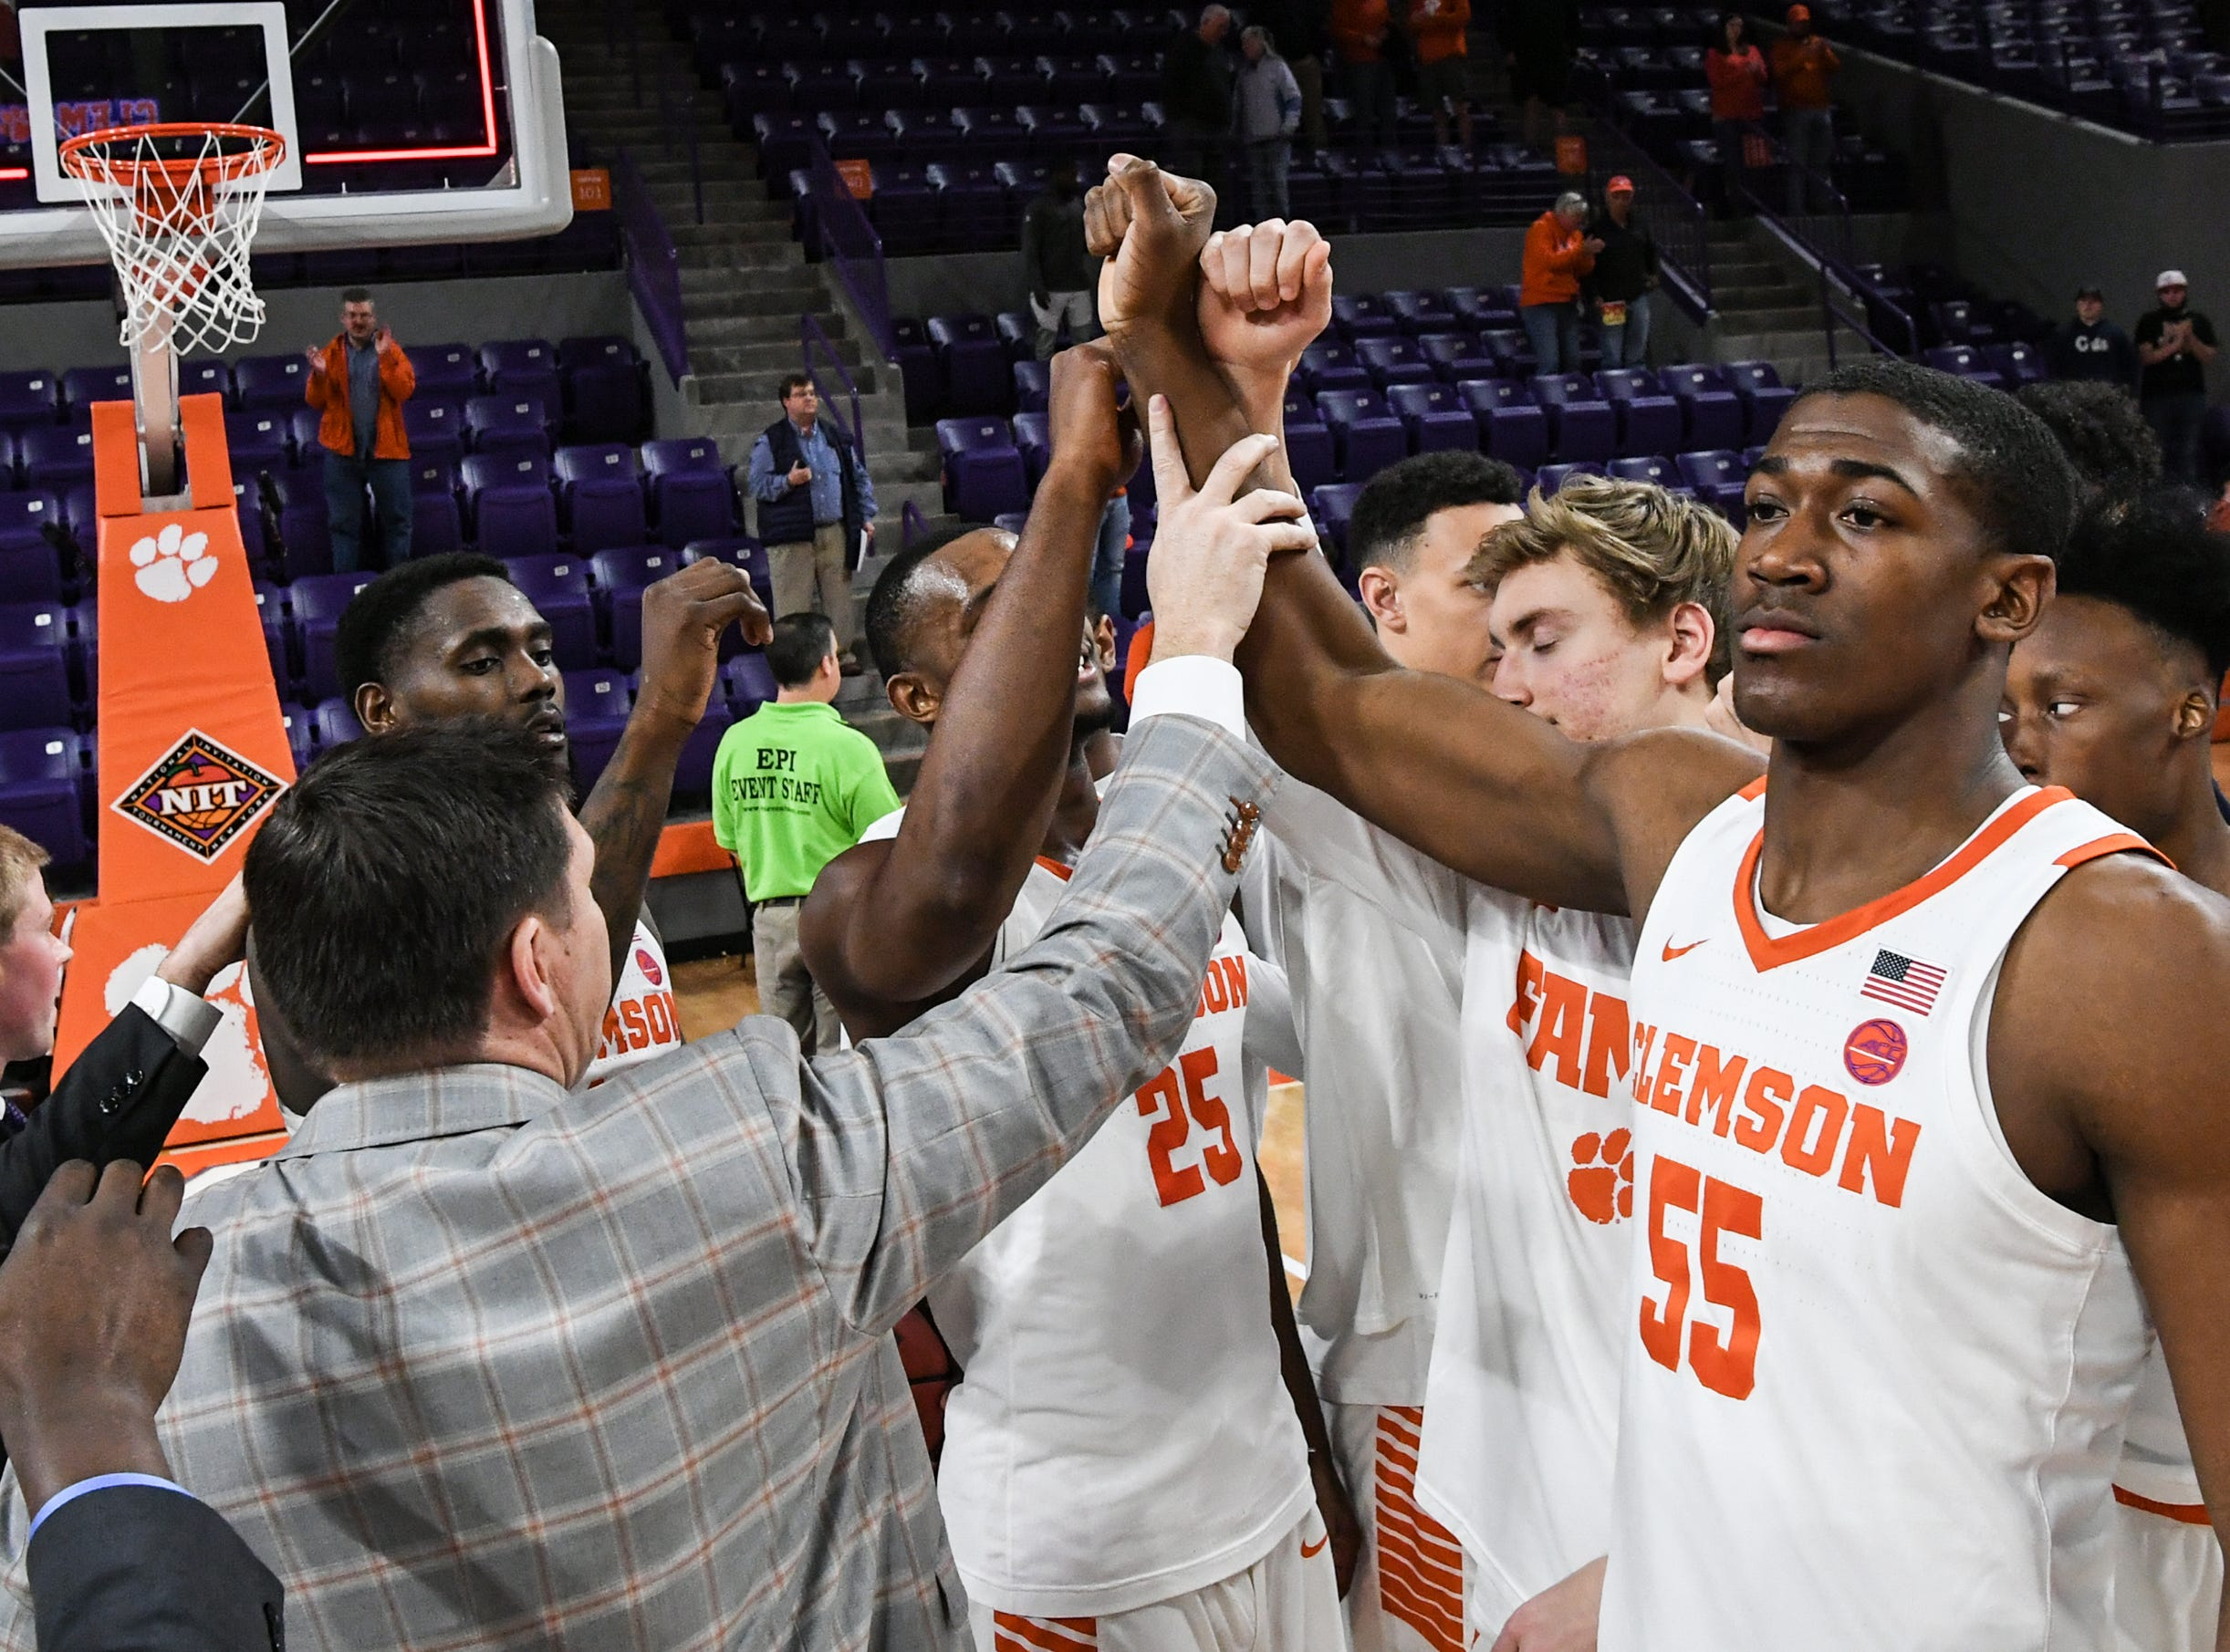 Clemson head coach Brad Brownell joins his team celebrating after a 75-69 win in the NIT at Littlejohn Coliseum in Clemson Tuesday, March 19, 2019.